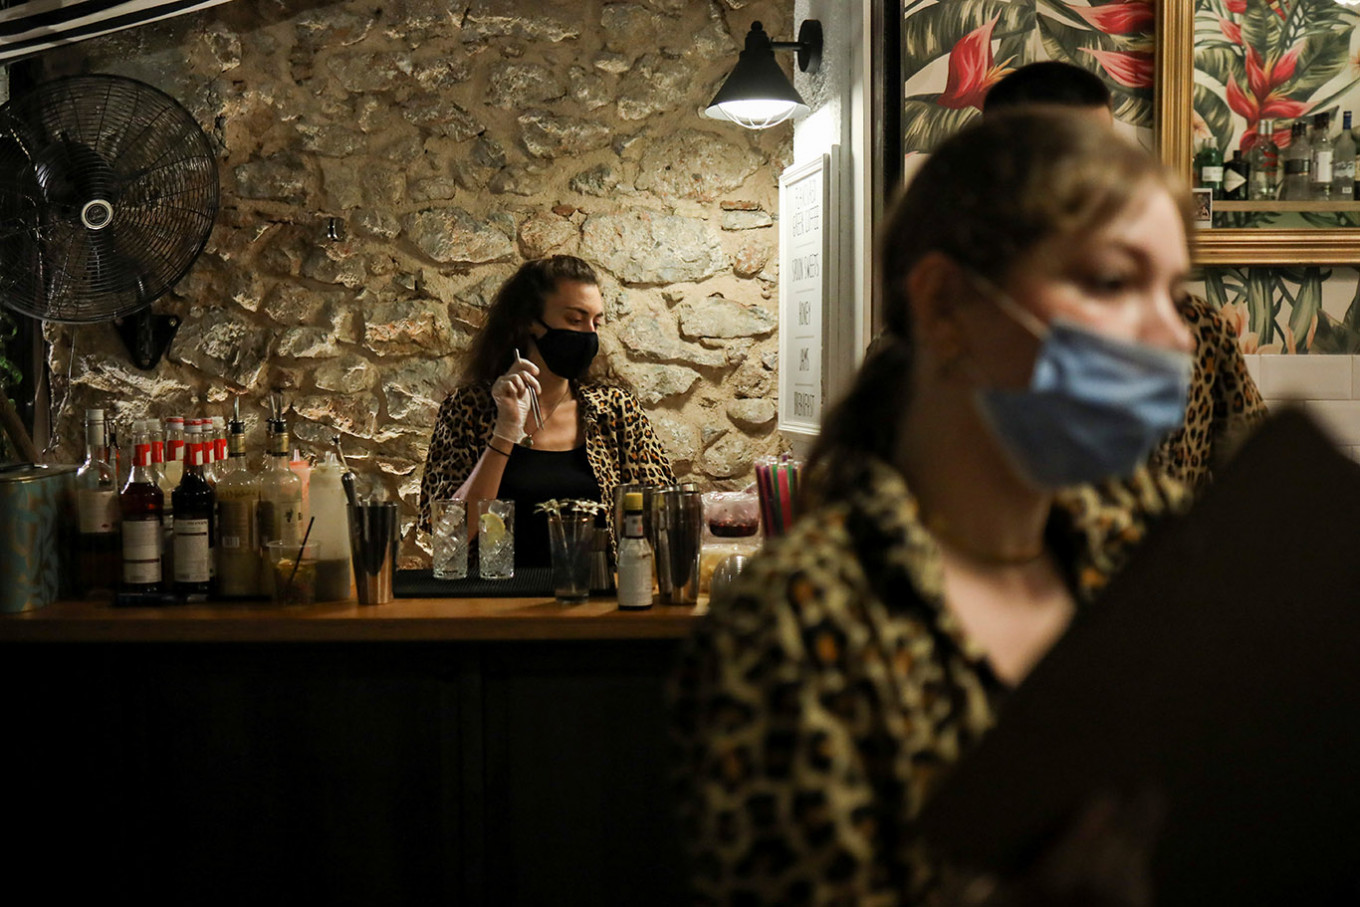 Europe ramps up controls fearing second virus wave